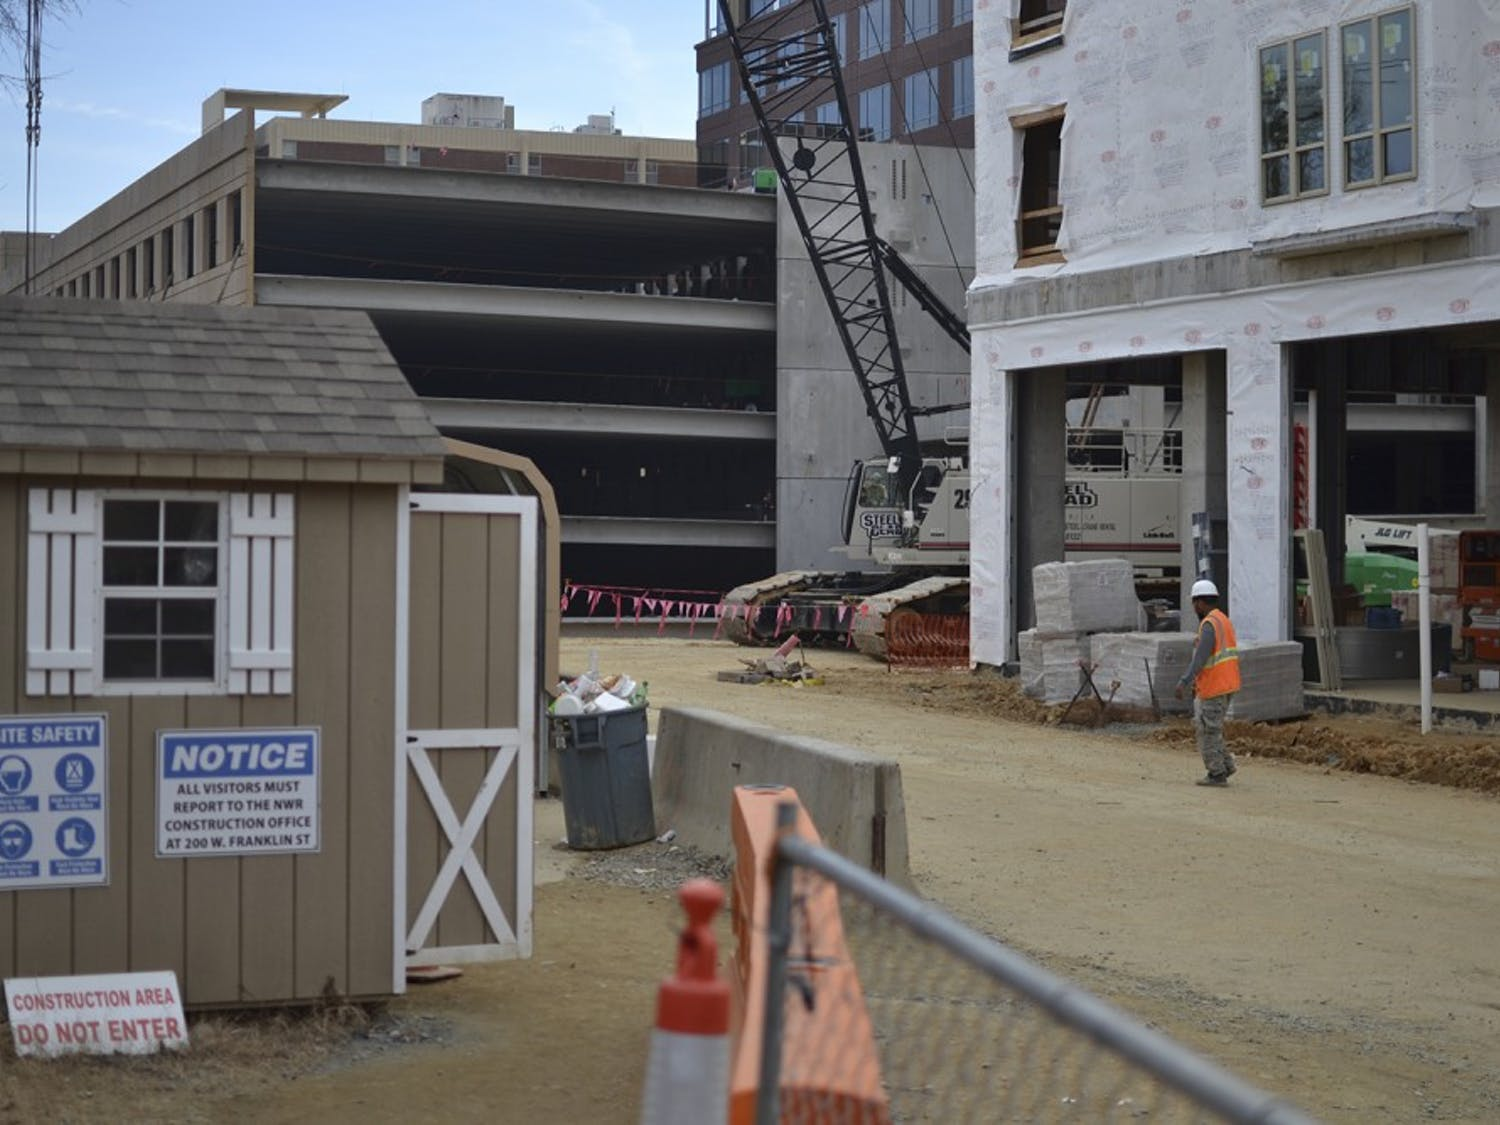 Construction of Carolina Square, a mix of apartment buildings and retail and office spaces, should be completed before the start of fall semester.